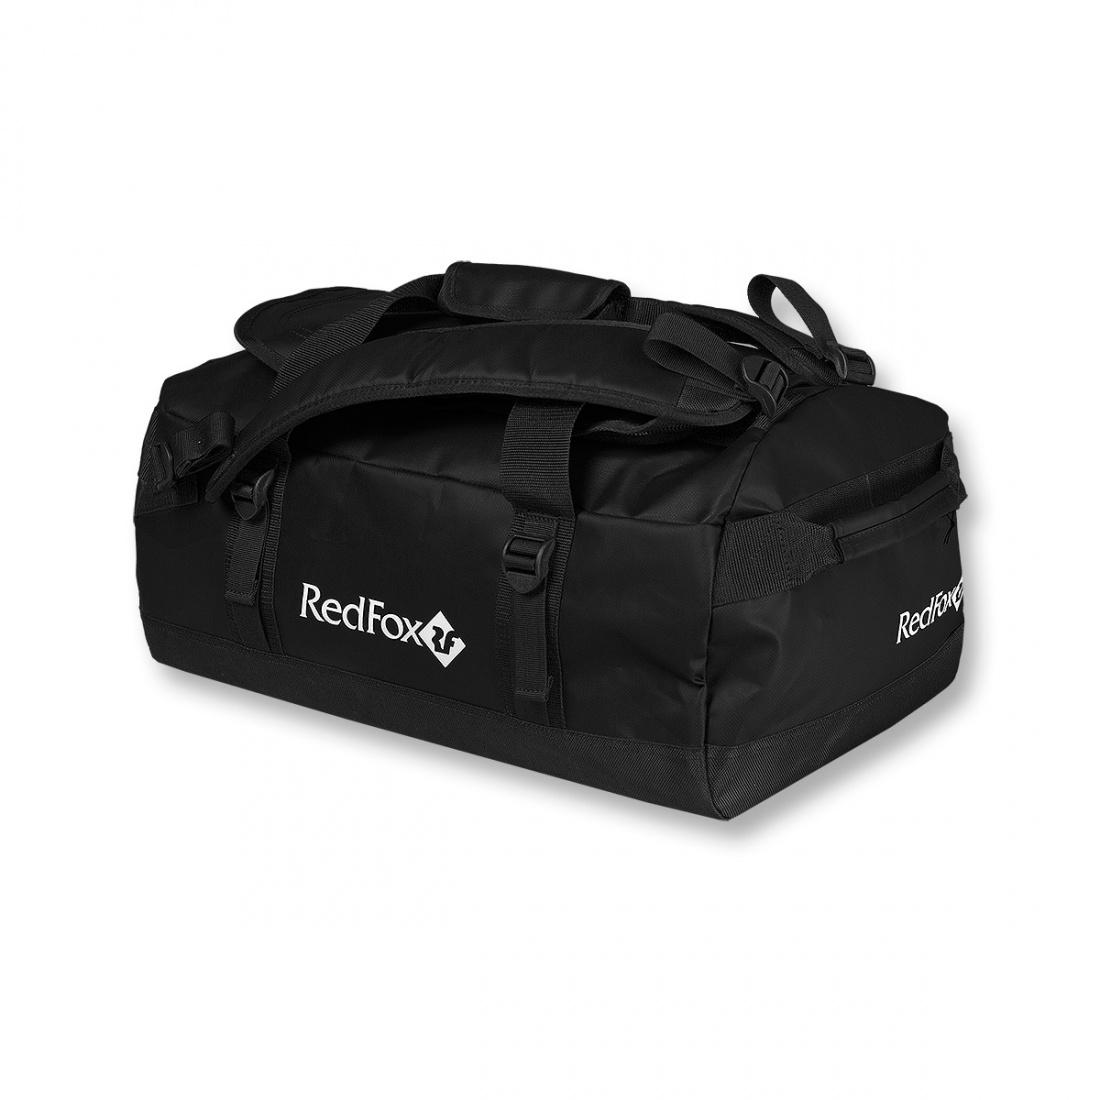 фото Баул Expedition Duffel Bag 100